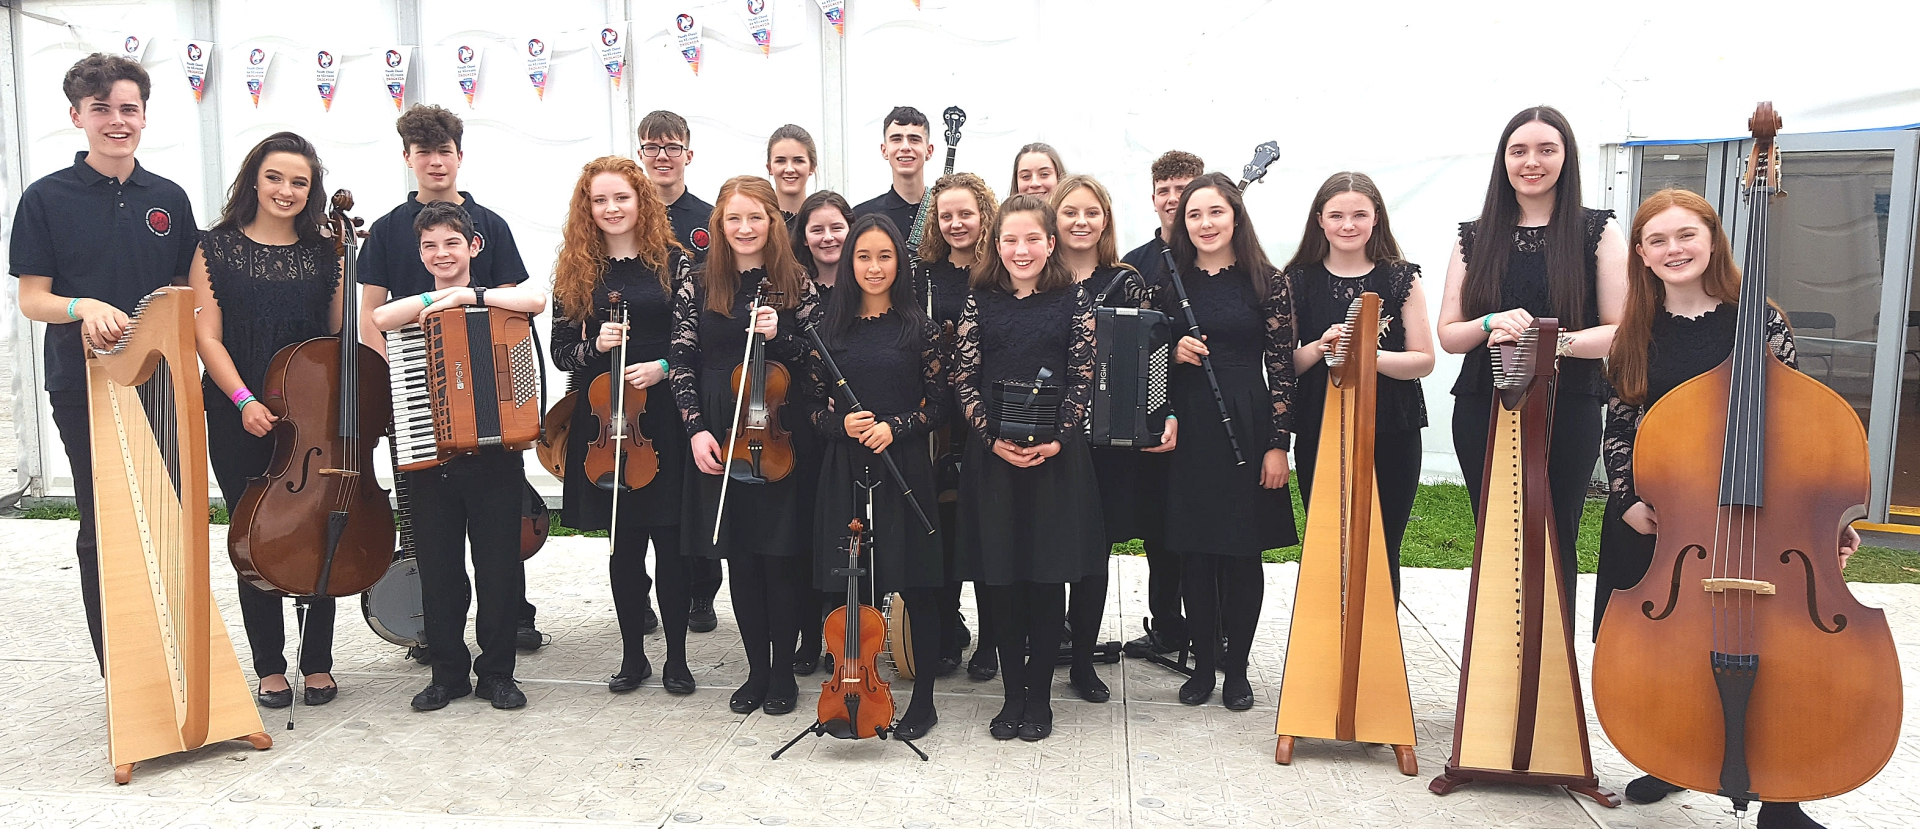 Members of  C.C.É. Dún Dealgan Group  awarded 3 place in the 15-18 group competition at Fleadh Cheoil na hÉireann in Droghed